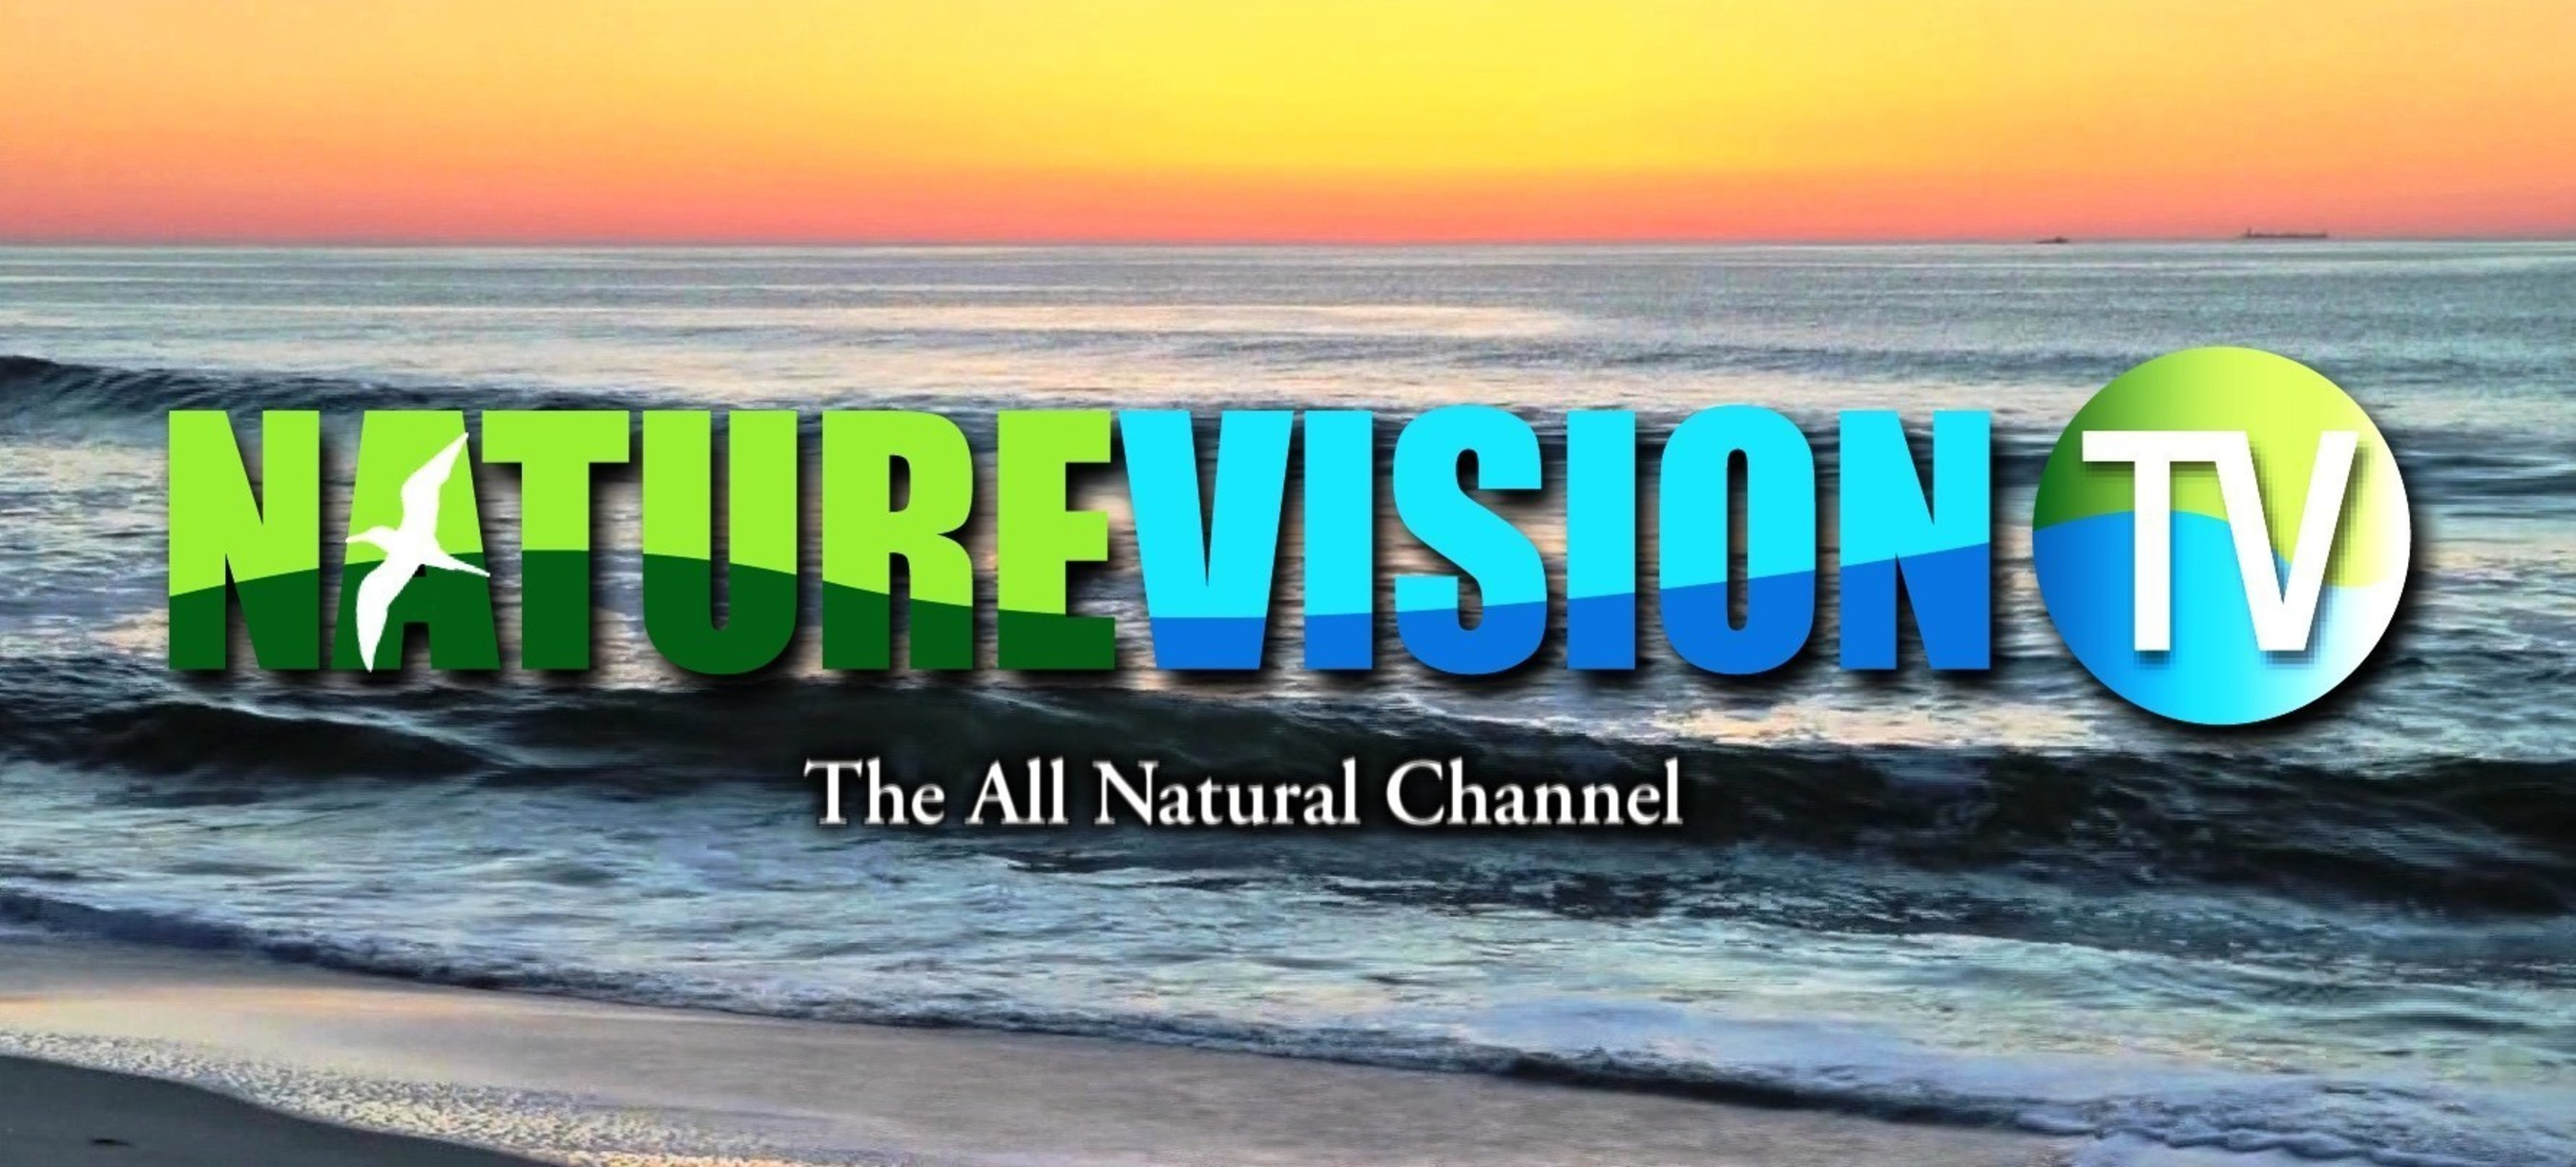 NatureVision TV, The All Natural Channel, now available online, and on demand on your television, computer, ...